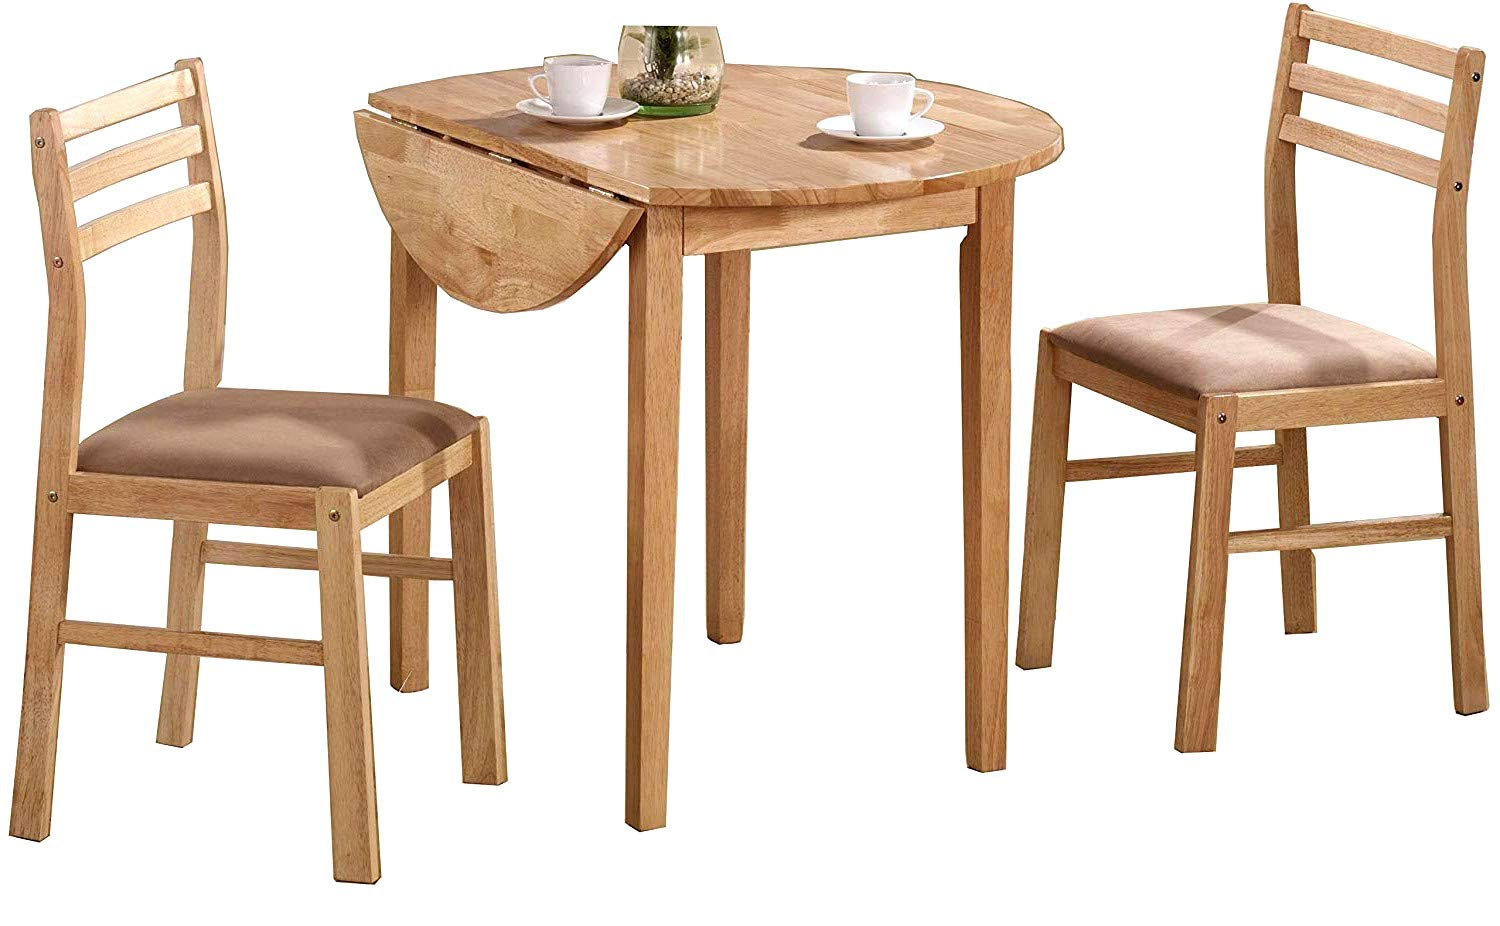 3pc Bistro Set Dining Pair of Chairs & Round Drop Leaf Table Comfortable Seats for Indoors Kitchen Dining Living Room Natural Padded Cushion Seats Back Support Home Furniture & eBook by Easy&FunDeals